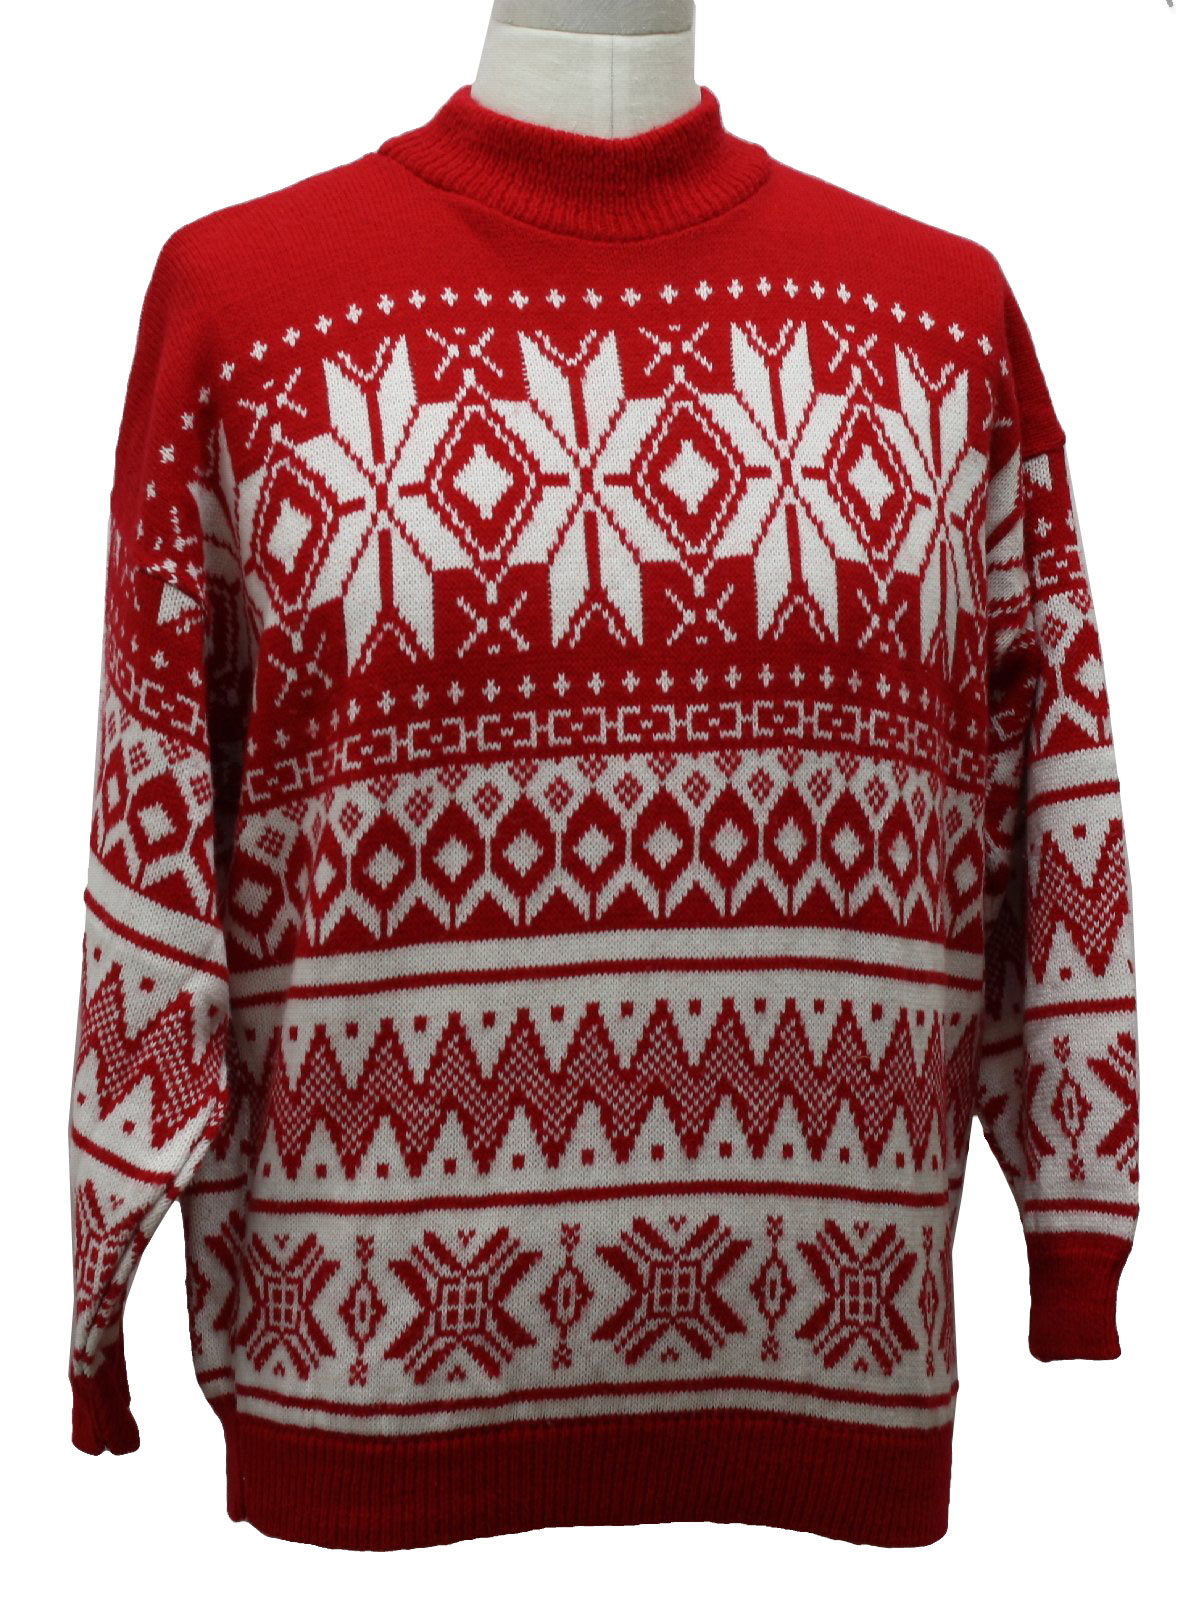 08ad2ca8dffe 1980s Totally 80s Ski Style Ugly Christmas Sweater: 80s authentic ...